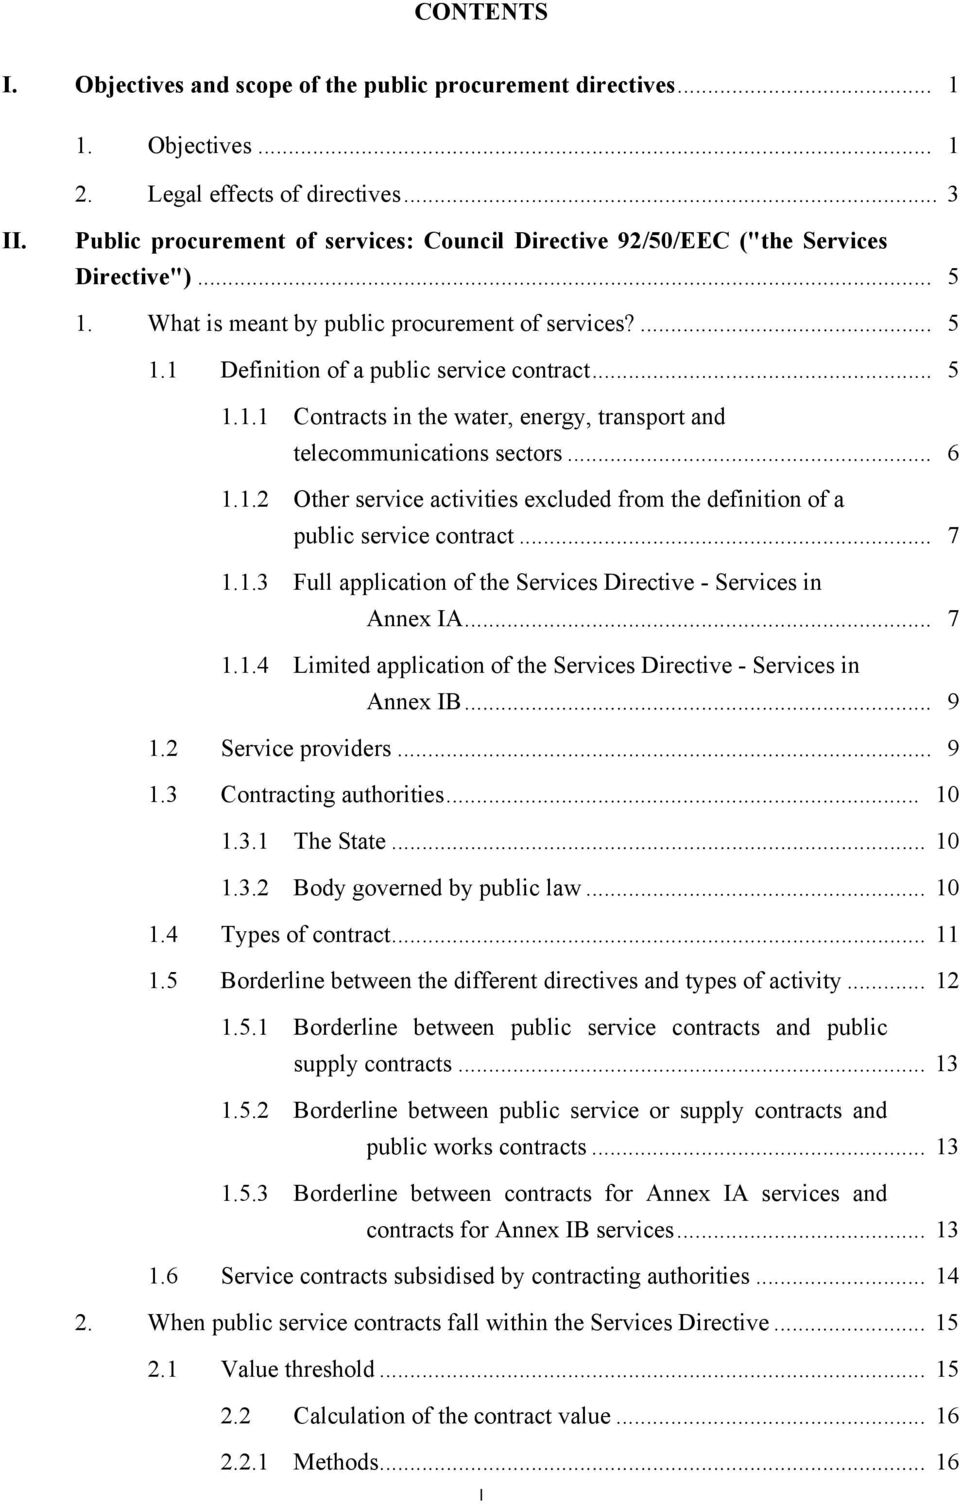 .. 6 1.1.2 Other service activities excluded from the definition of a public service contract... 7 1.1.3 Full application of the Services Directive - Services in Annex IA... 7 1.1.4 Limited application of the Services Directive - Services in Annex IB.